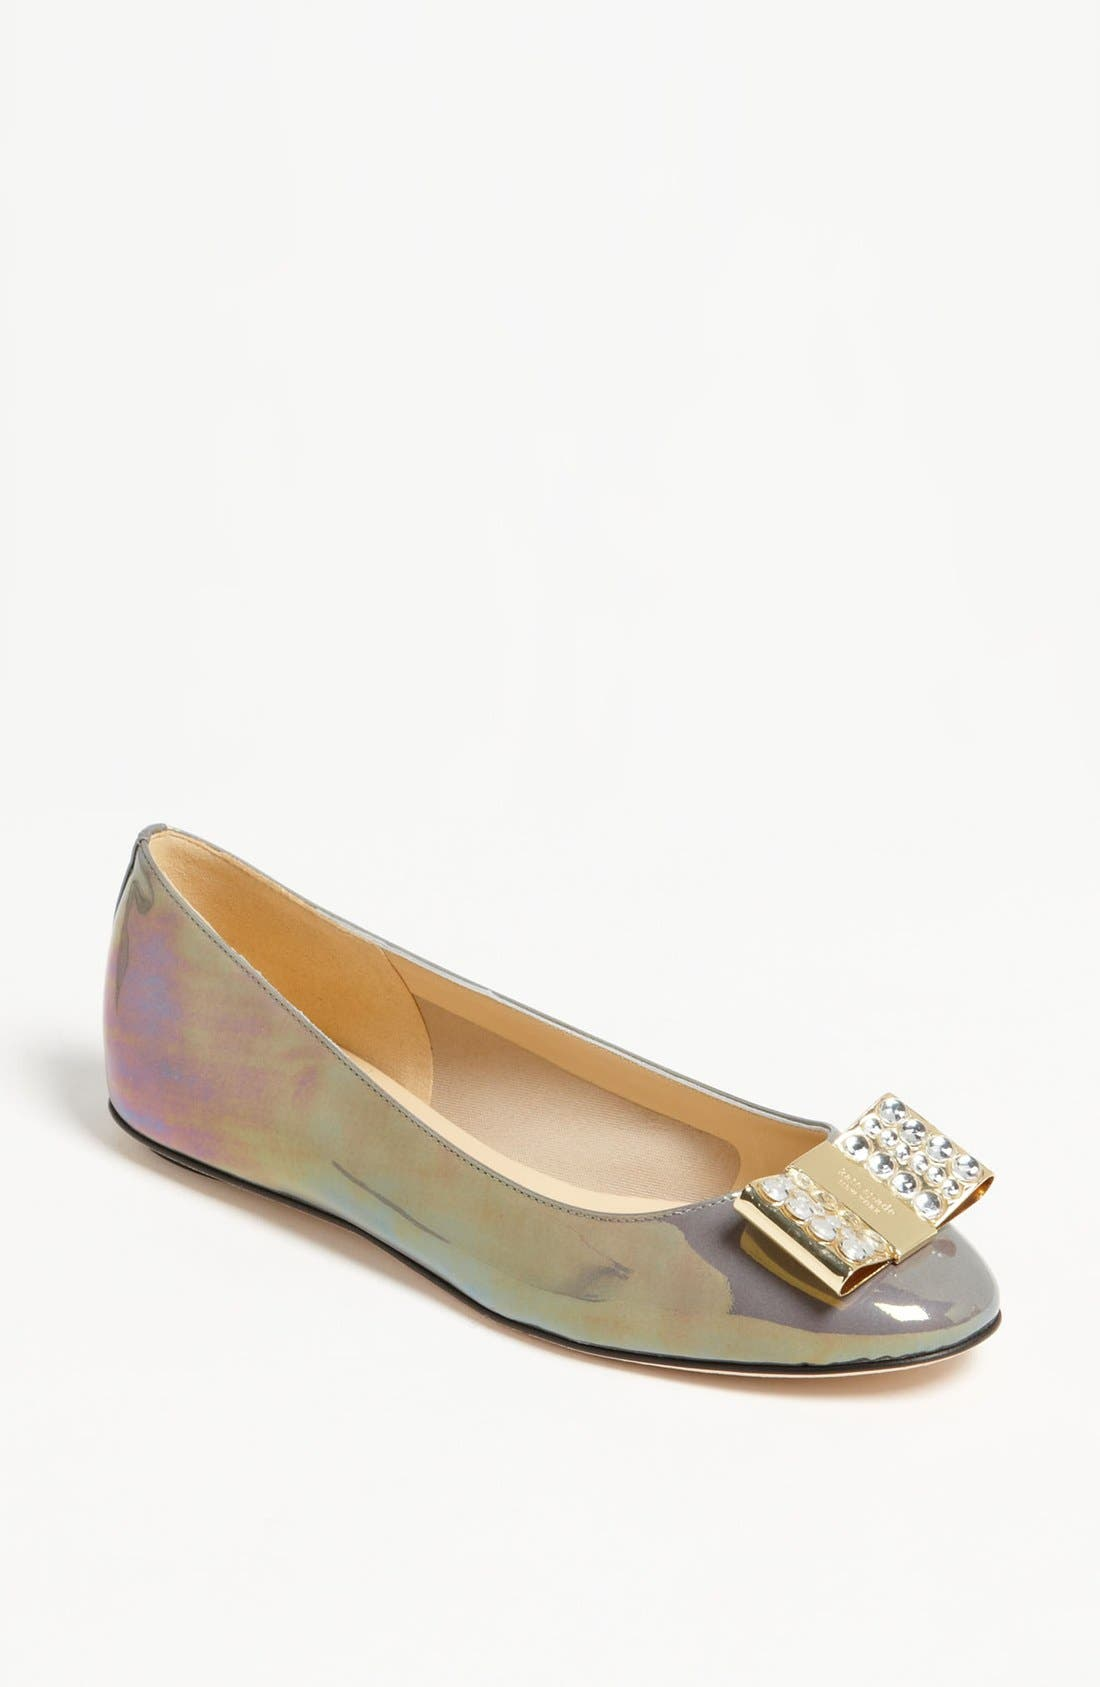 Alternate Image 1 Selected - kate spade new york 'knightley' flat